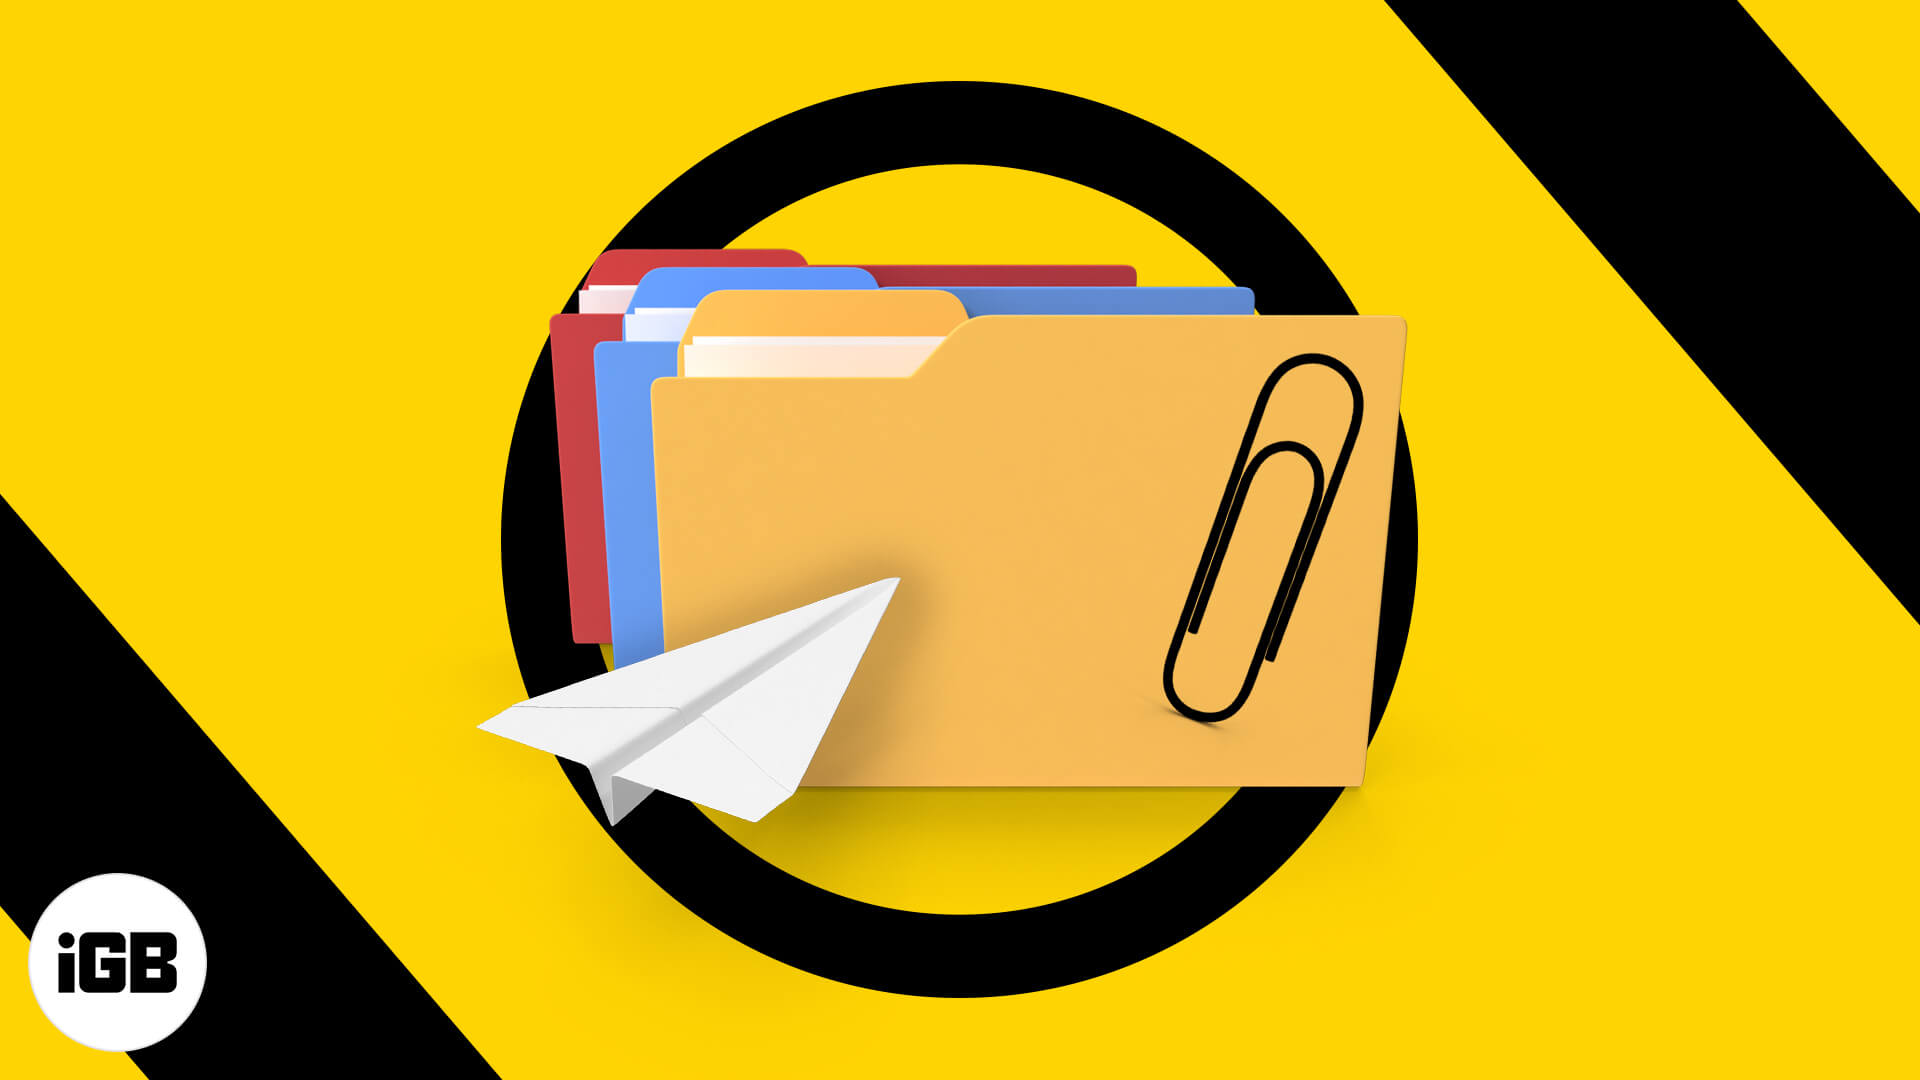 How to send large files via email from iPhone and iPad